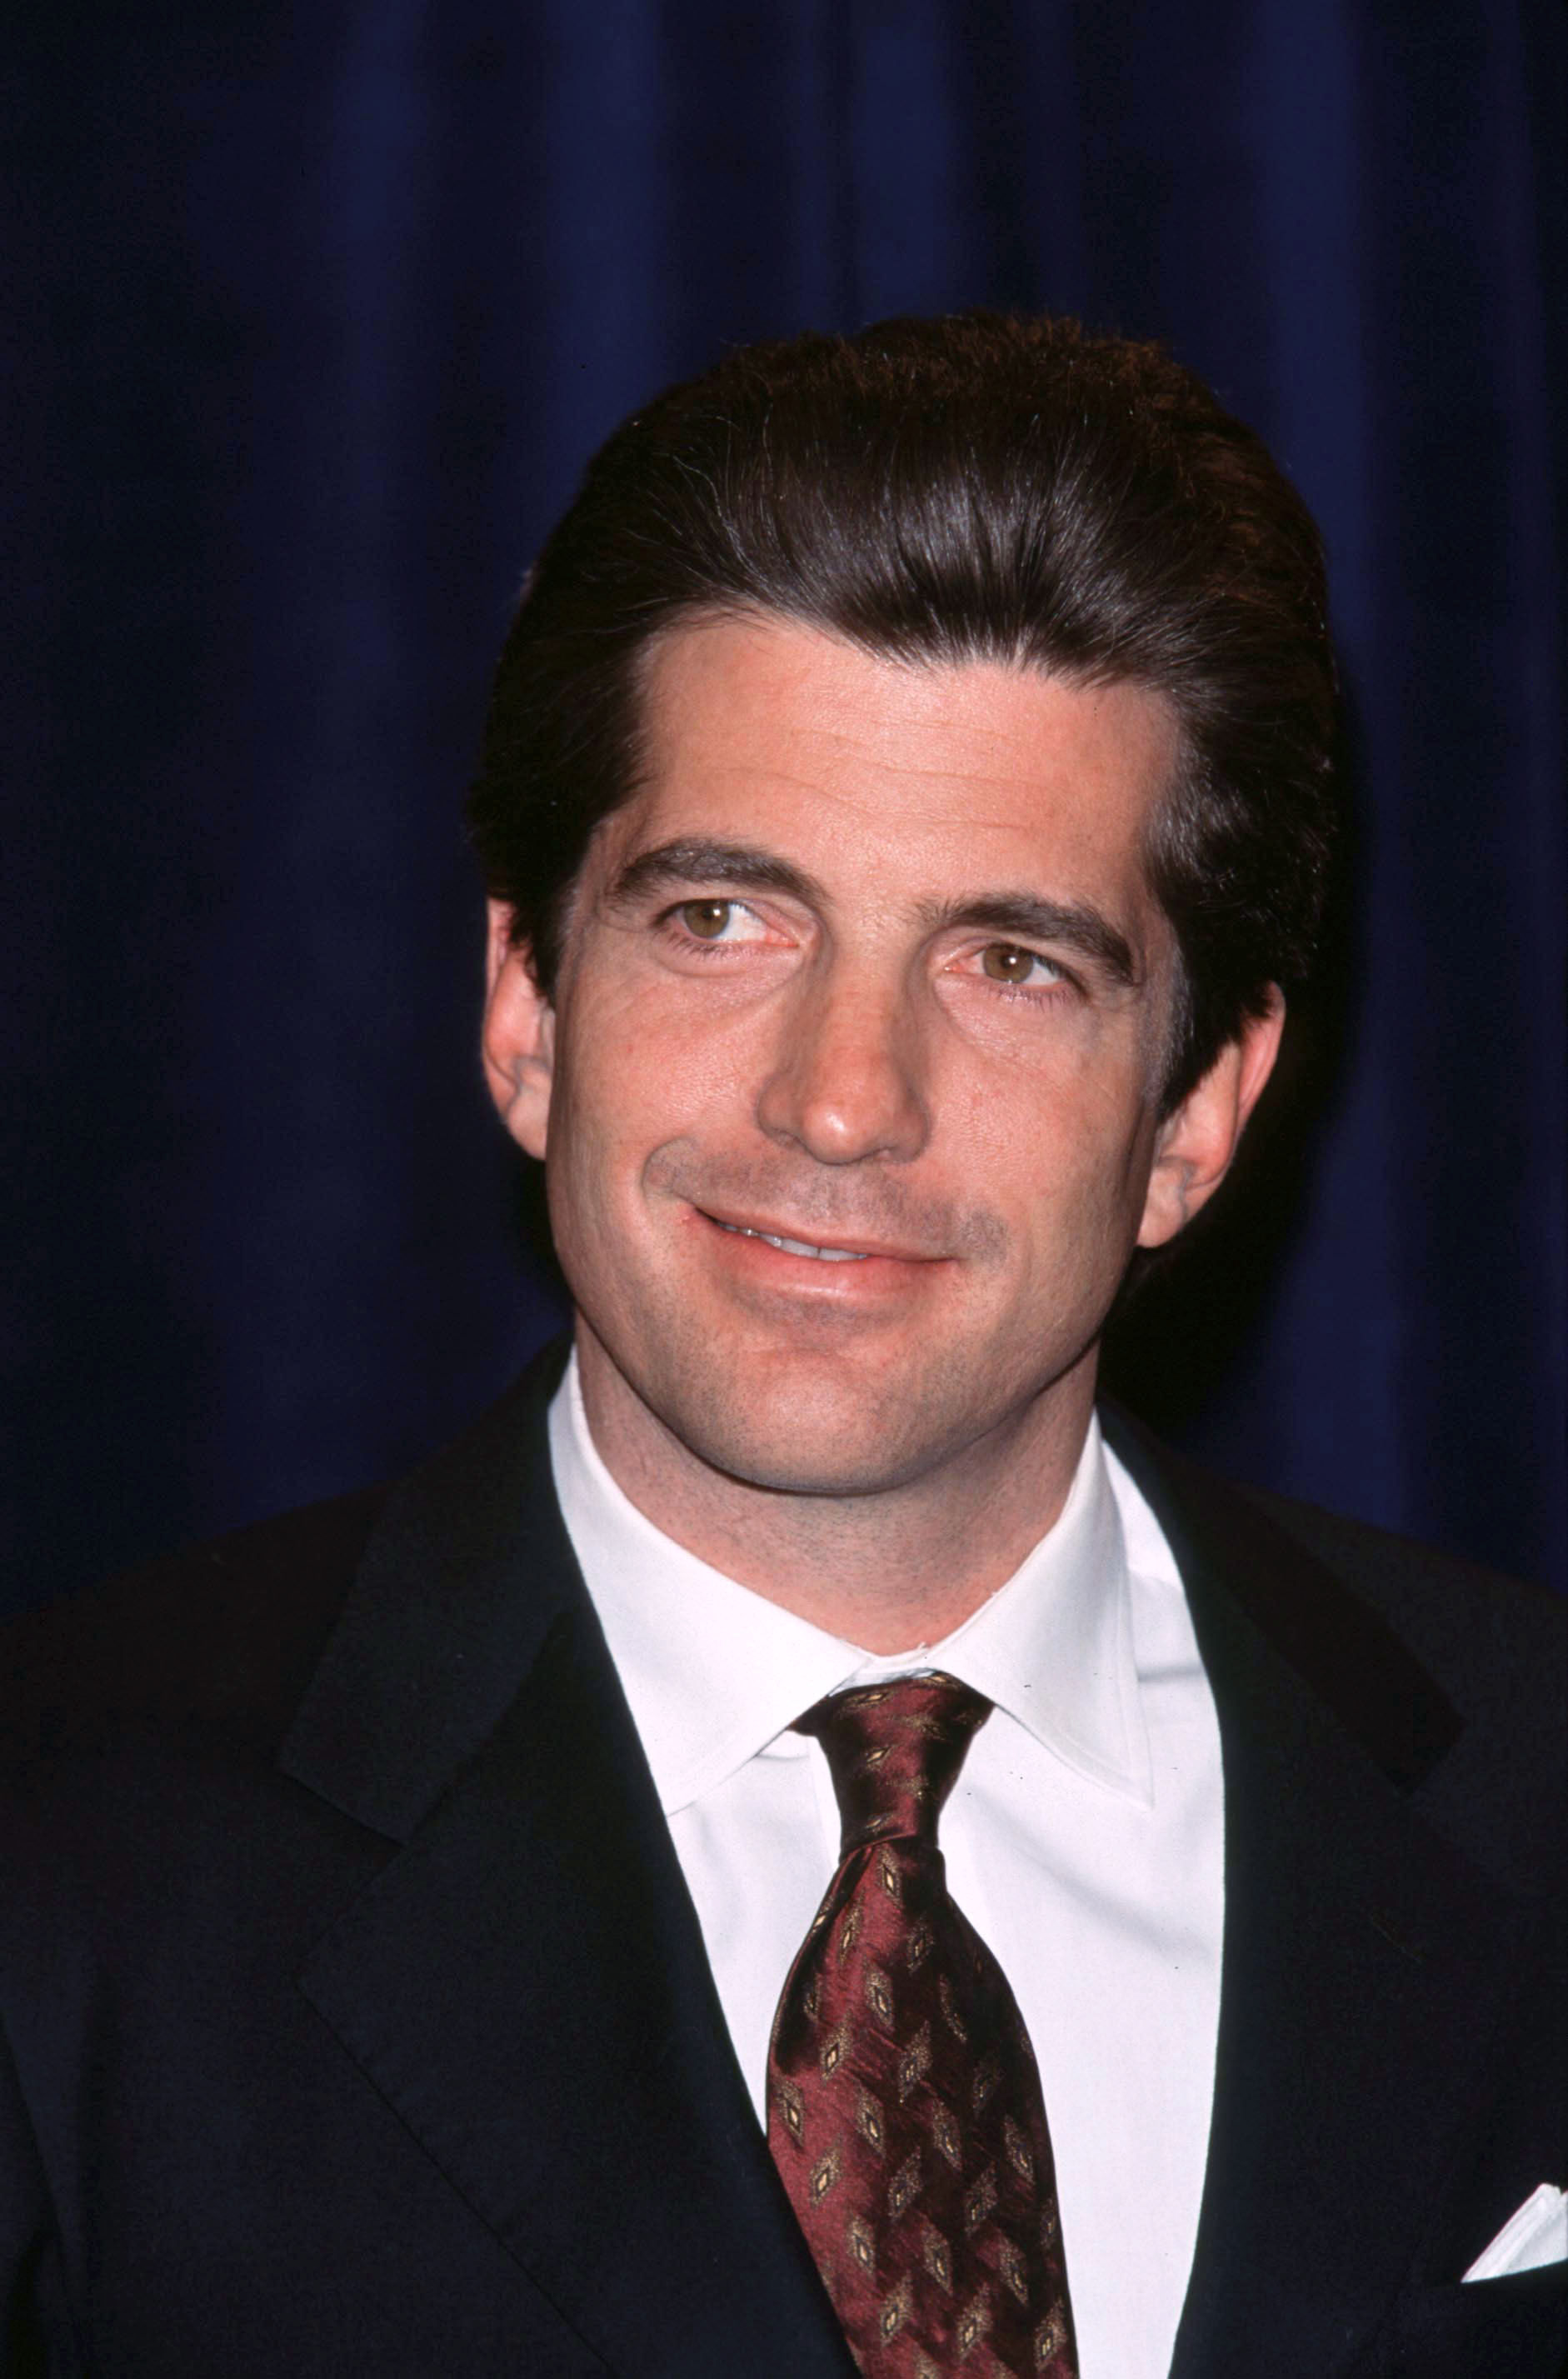 George Washington Law School >> President John F. Kennedy Jr. (Timeline) | Alternative ...